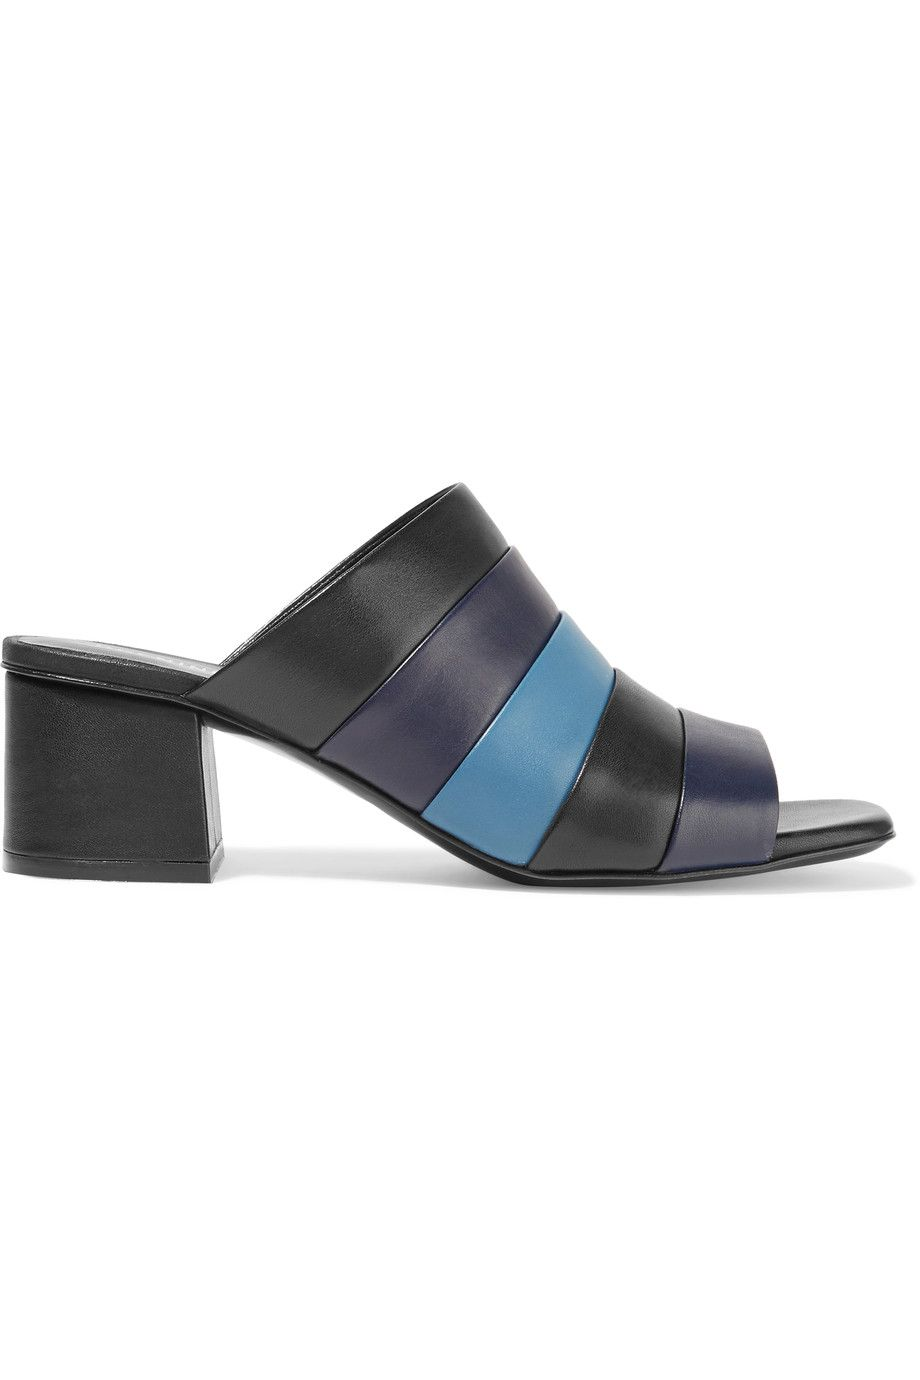 Opening Ceremony Ellenha striped leather sandals Cheap Price In China XhIK8z